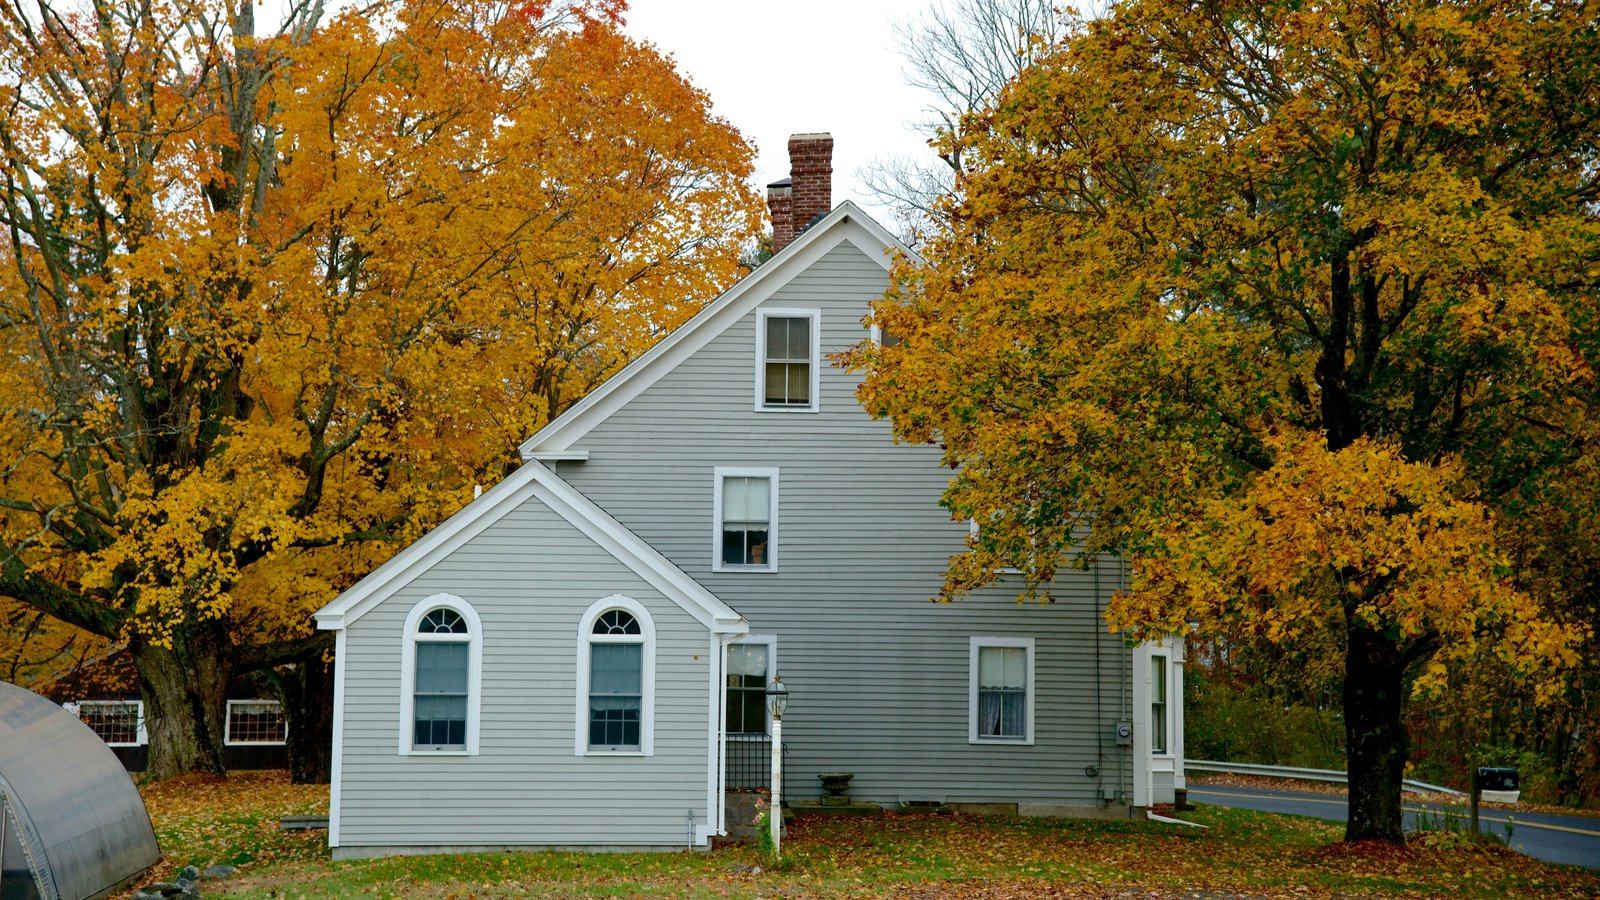 Massachusetts featuring fall colors and a house